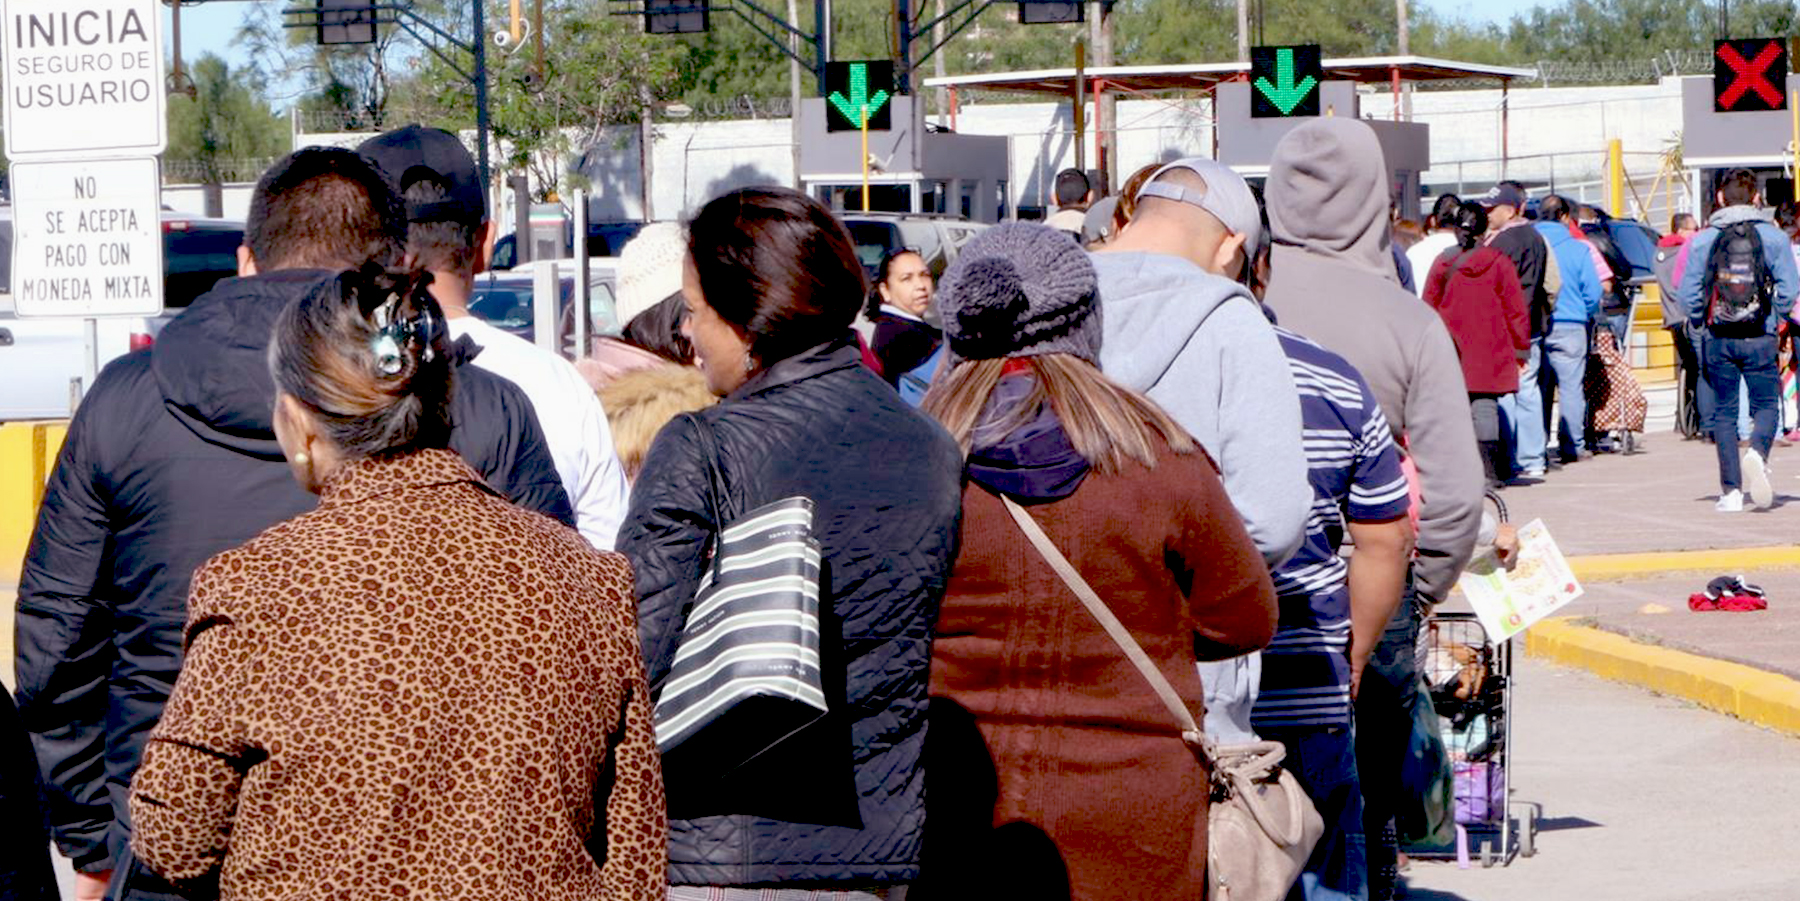 Image of people waiting in line at the border between Mexico and the United States.